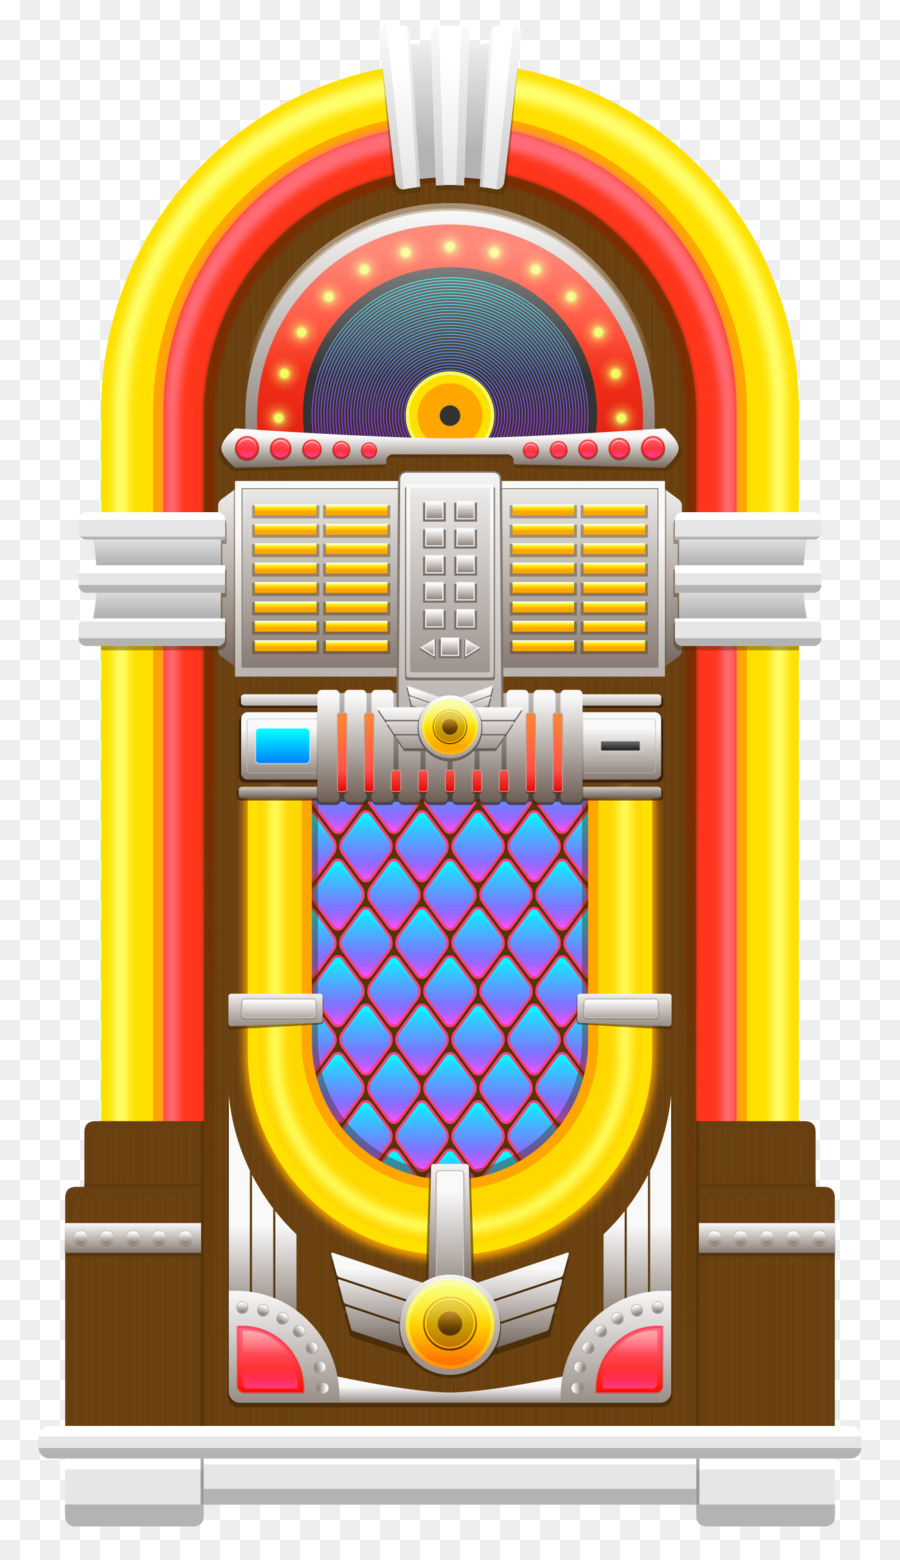 medium resolution of jukebox clothing rock and roll yellow machine png